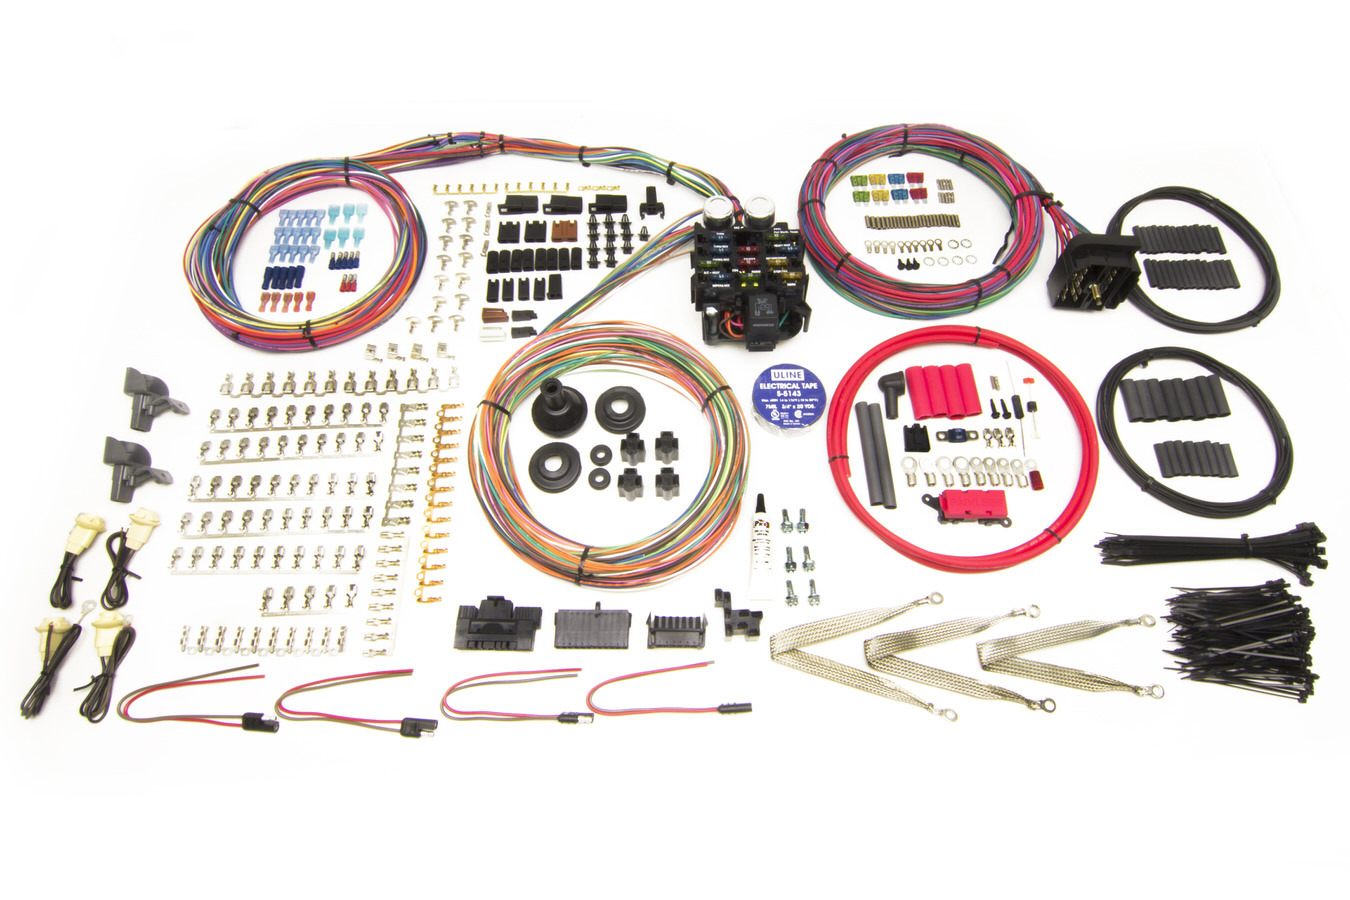 Painless Wiring 10403 Car Wiring Harness, Pro Series, Customizable, 23 Circuit, Bulkhead Firewall Pass-Through, In Column Key, GM, Kit